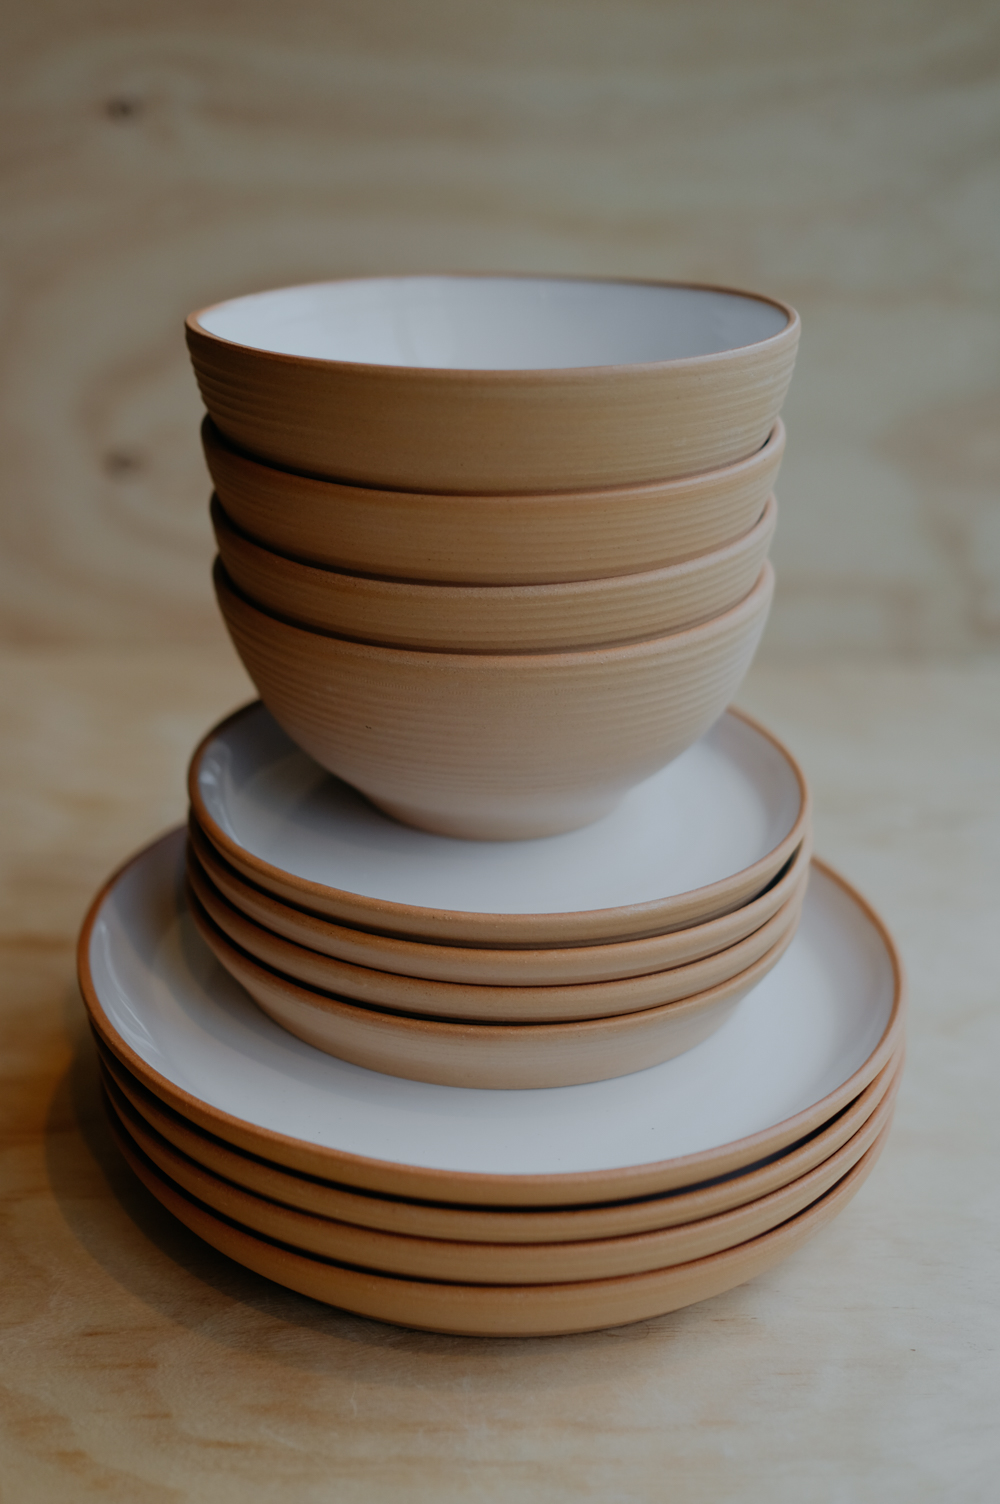 CUSTOM TABLEWARE - For both commercial establishments and private homes